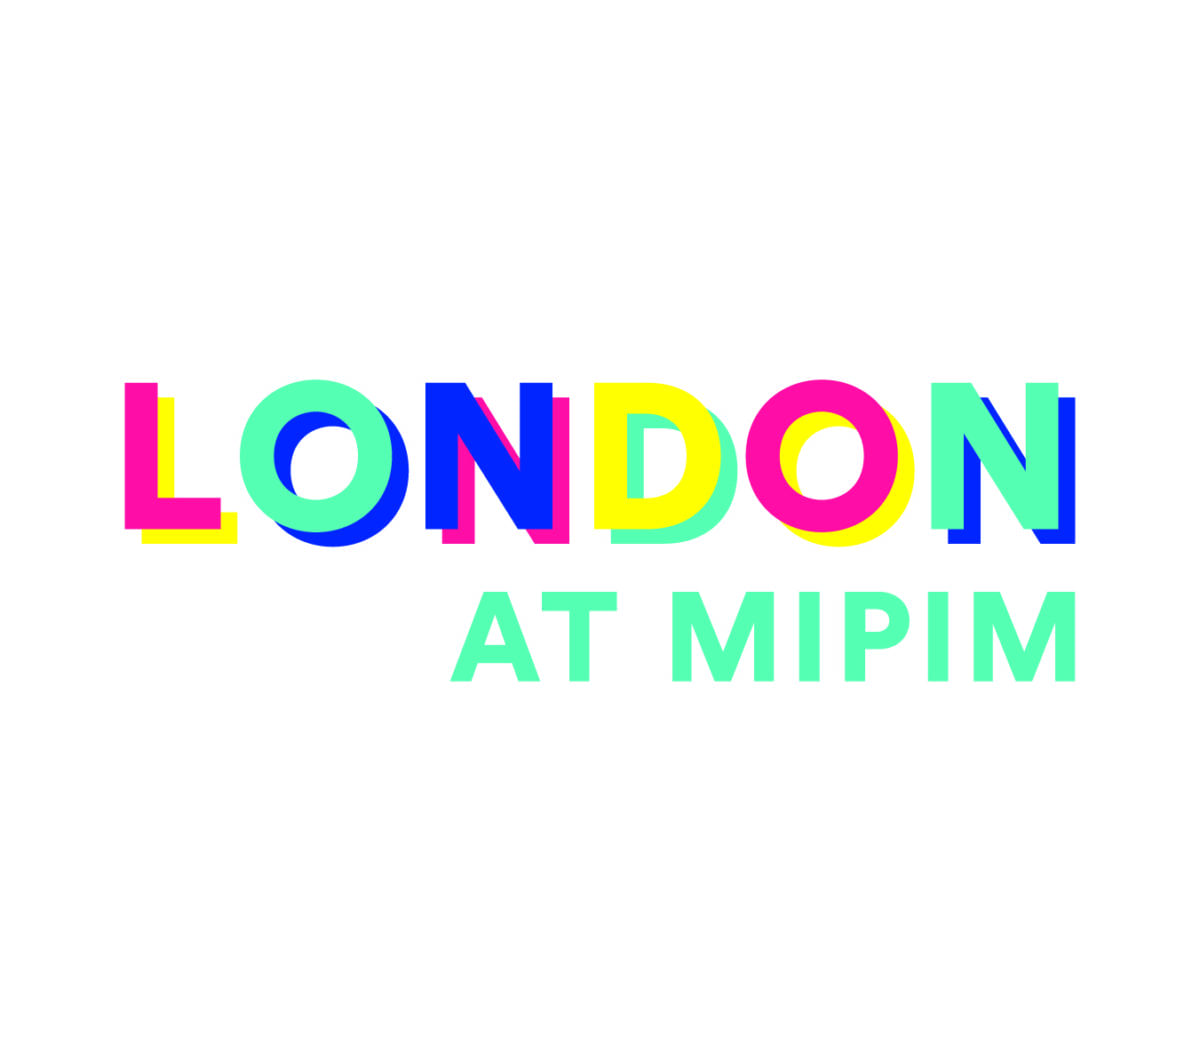 Austin-Smith:Lord supporting the London Stand at MIPIM